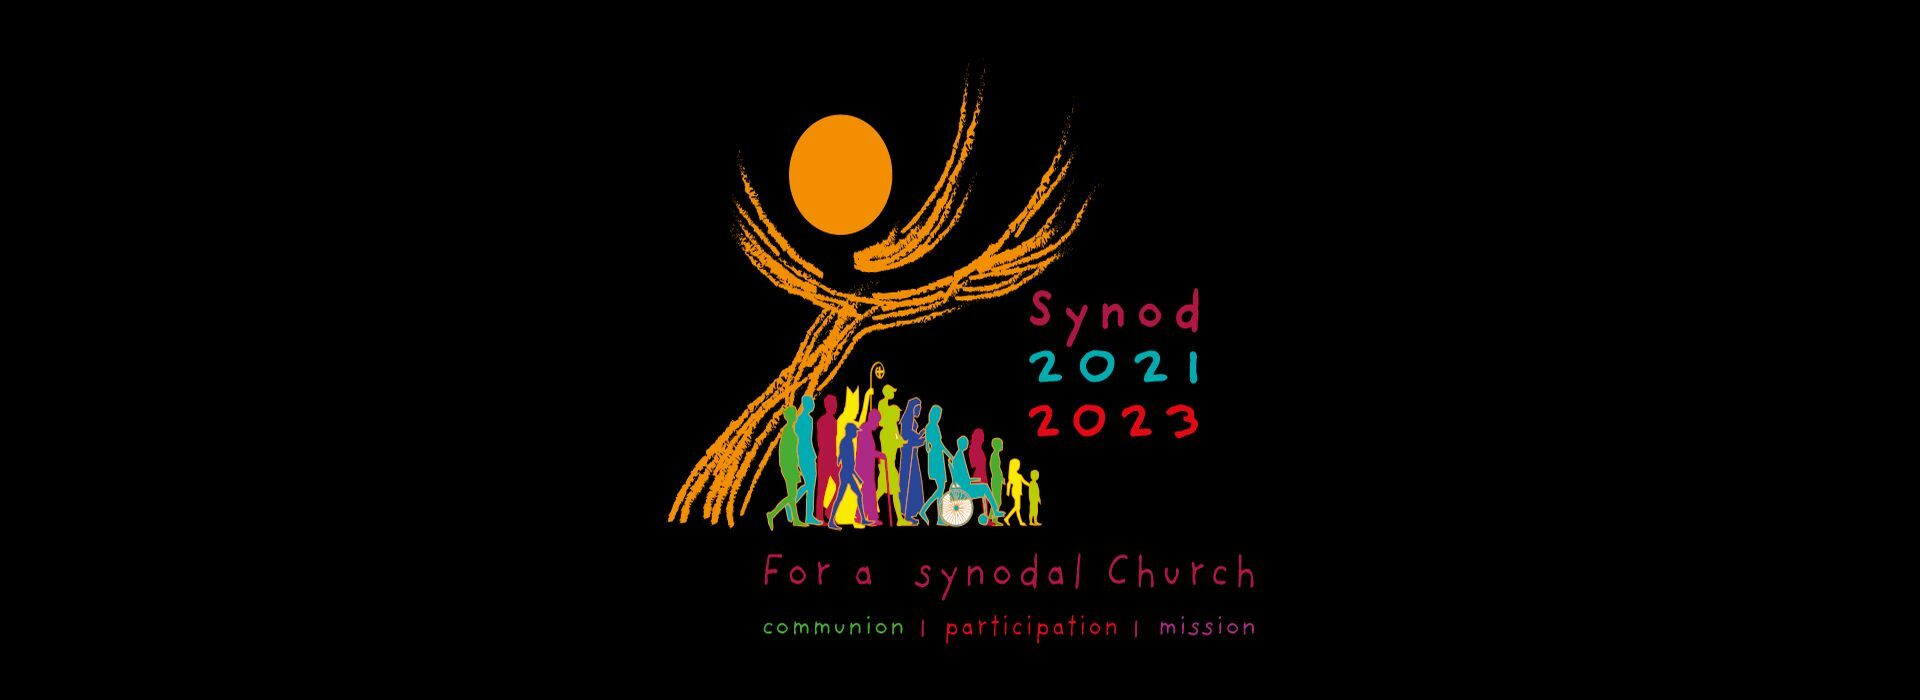 COMMUNION PARTICIPATION MISSION  Synodality Walking Together